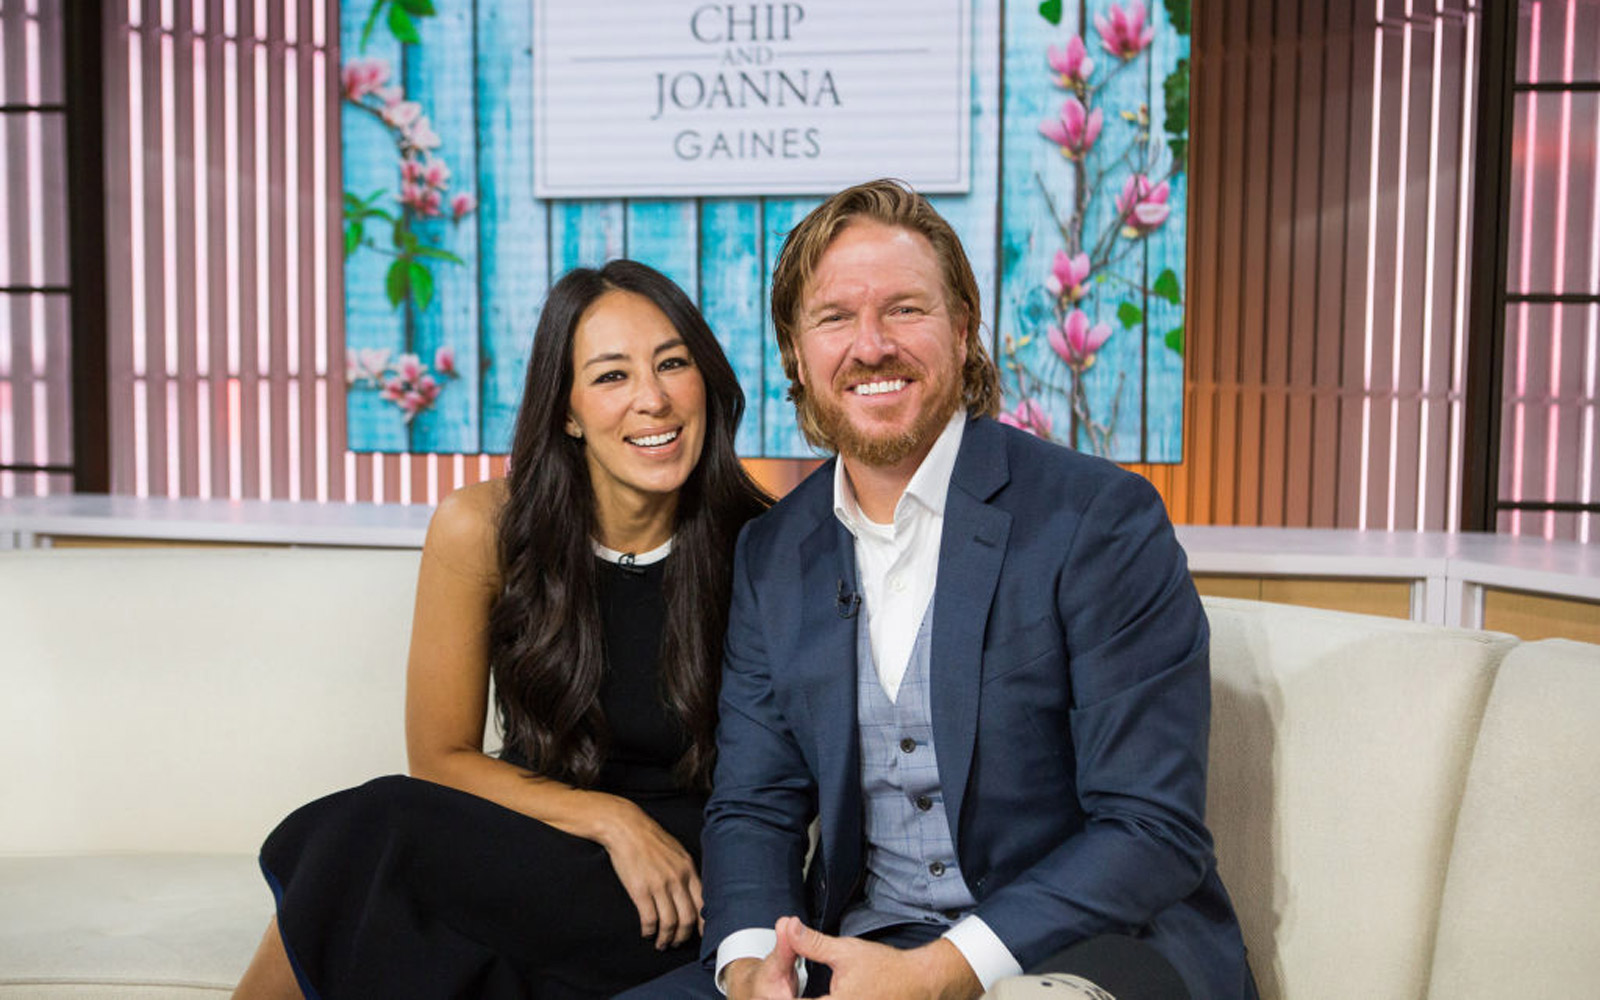 Chip and Joanna Gaines' Restaurant Is Your Newest Reason to Go to Waco, Texas